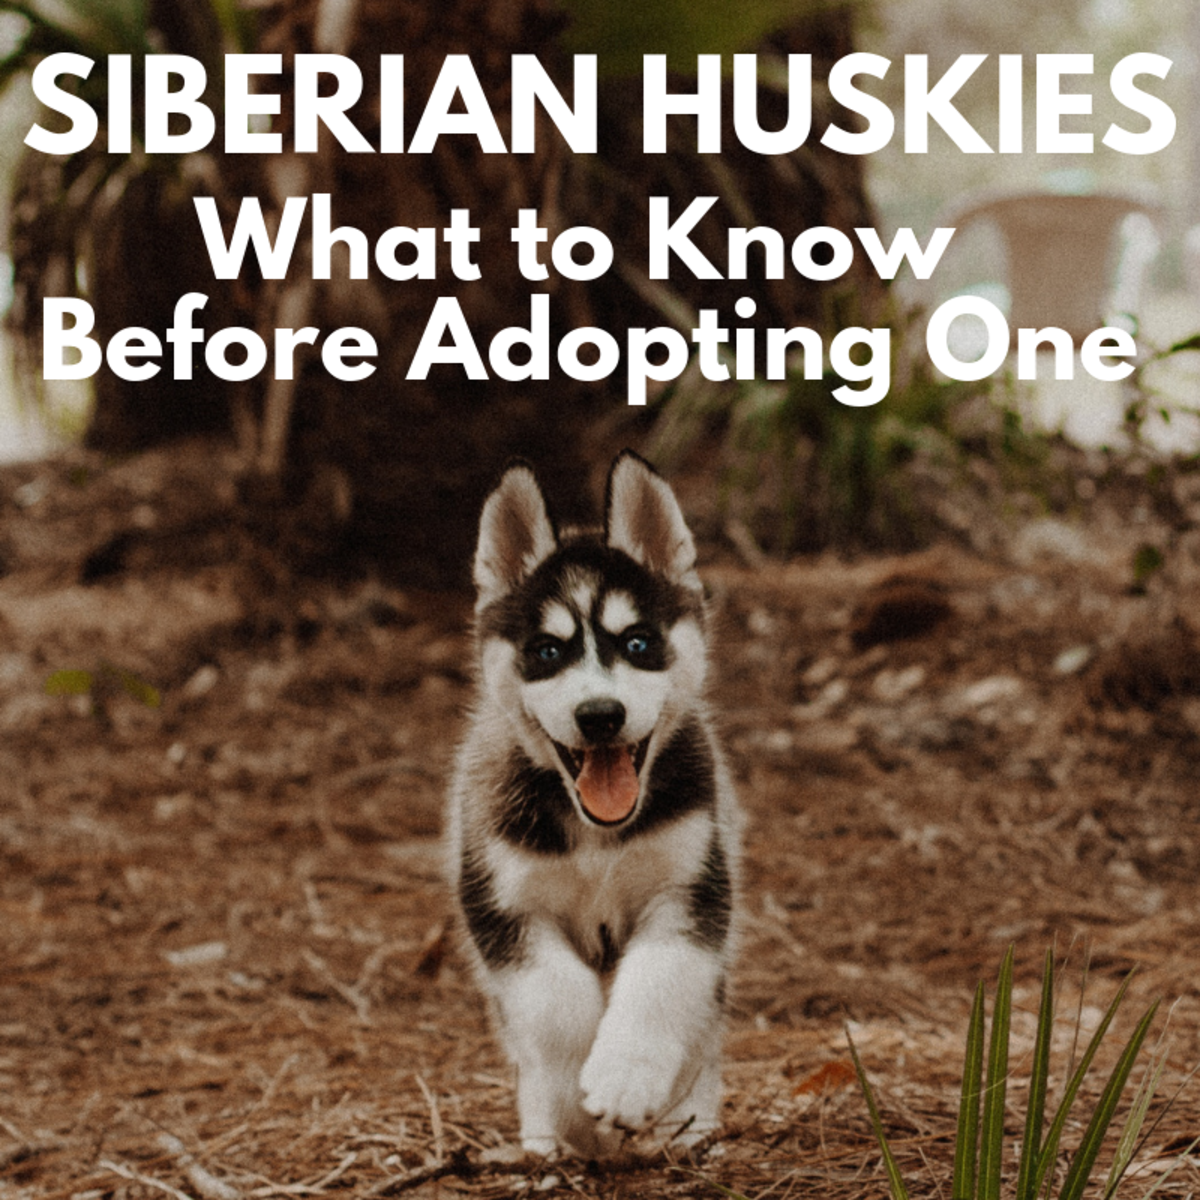 Five Things to Know Before Adopting a Siberian Husky